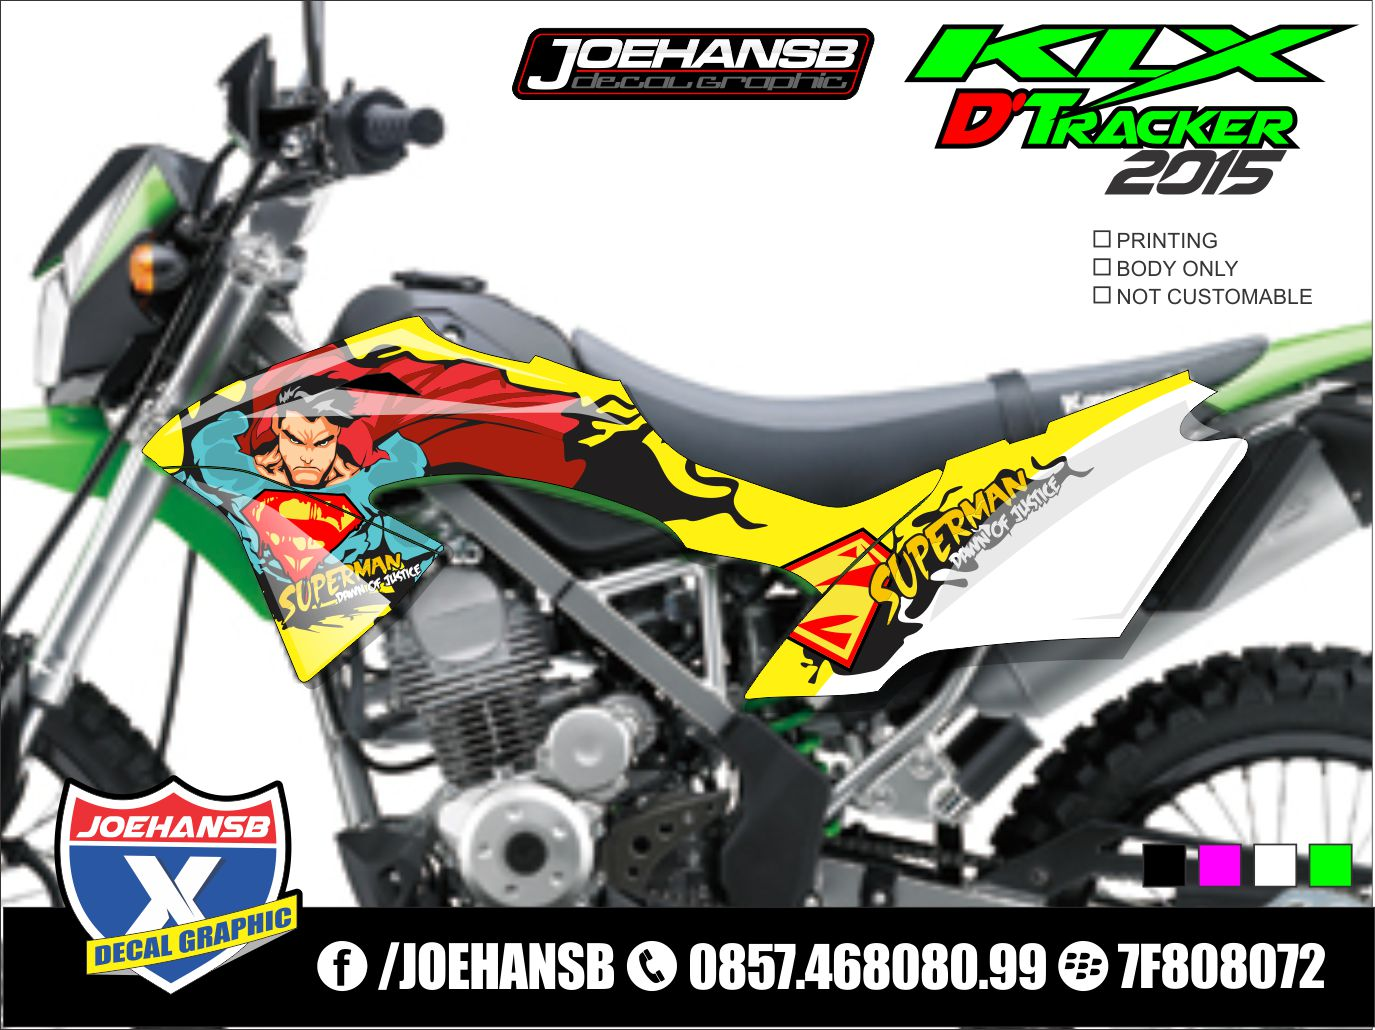 Jual decal motor update maret koleksi decal klx dtx new